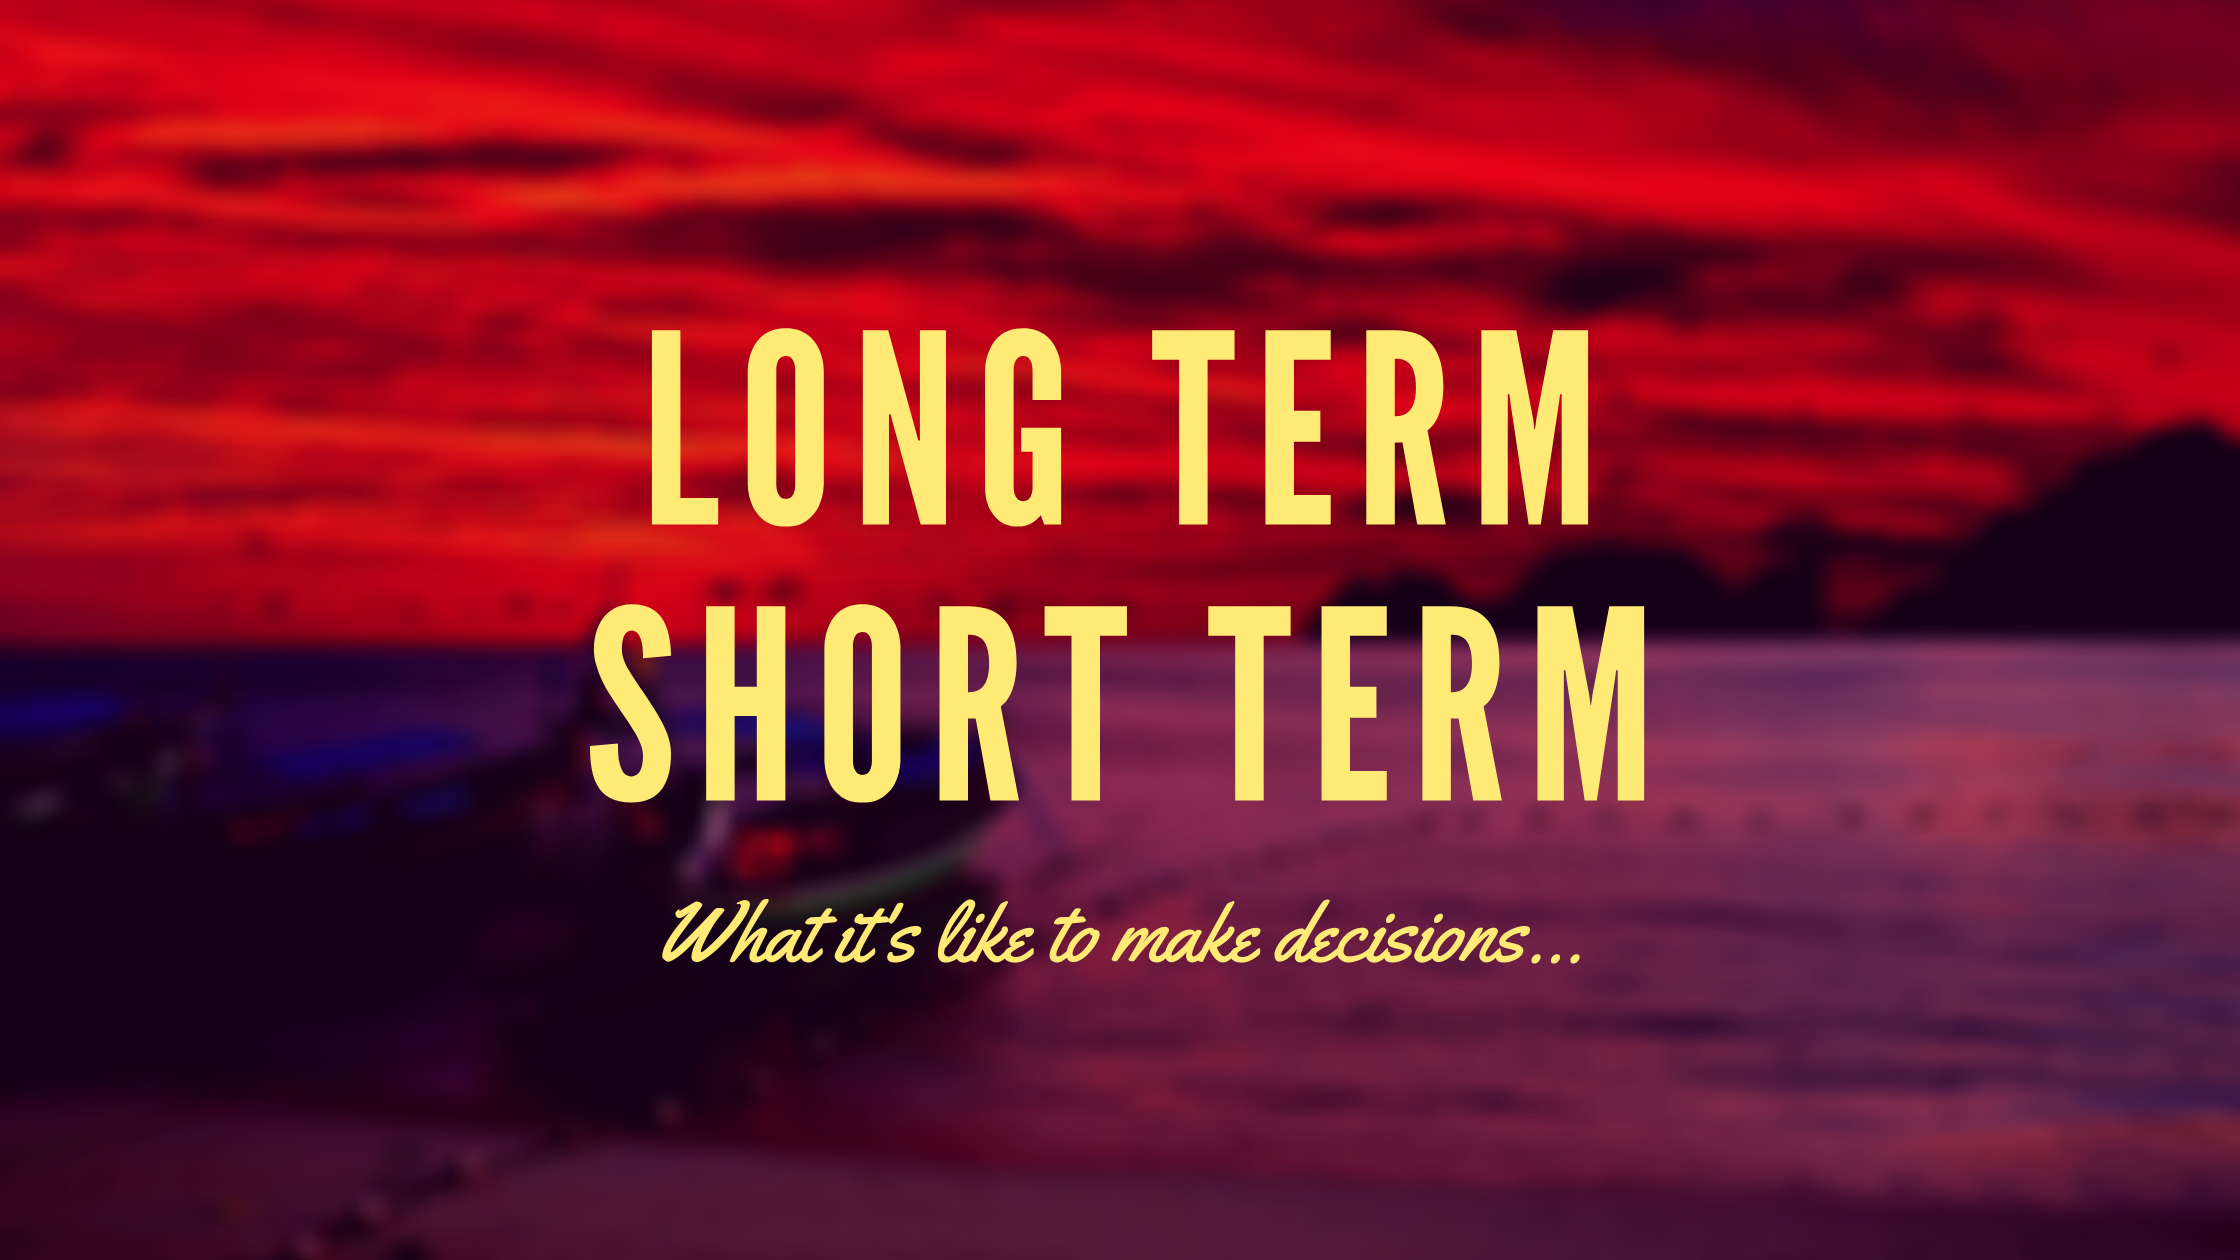 Long Term v. Short Term